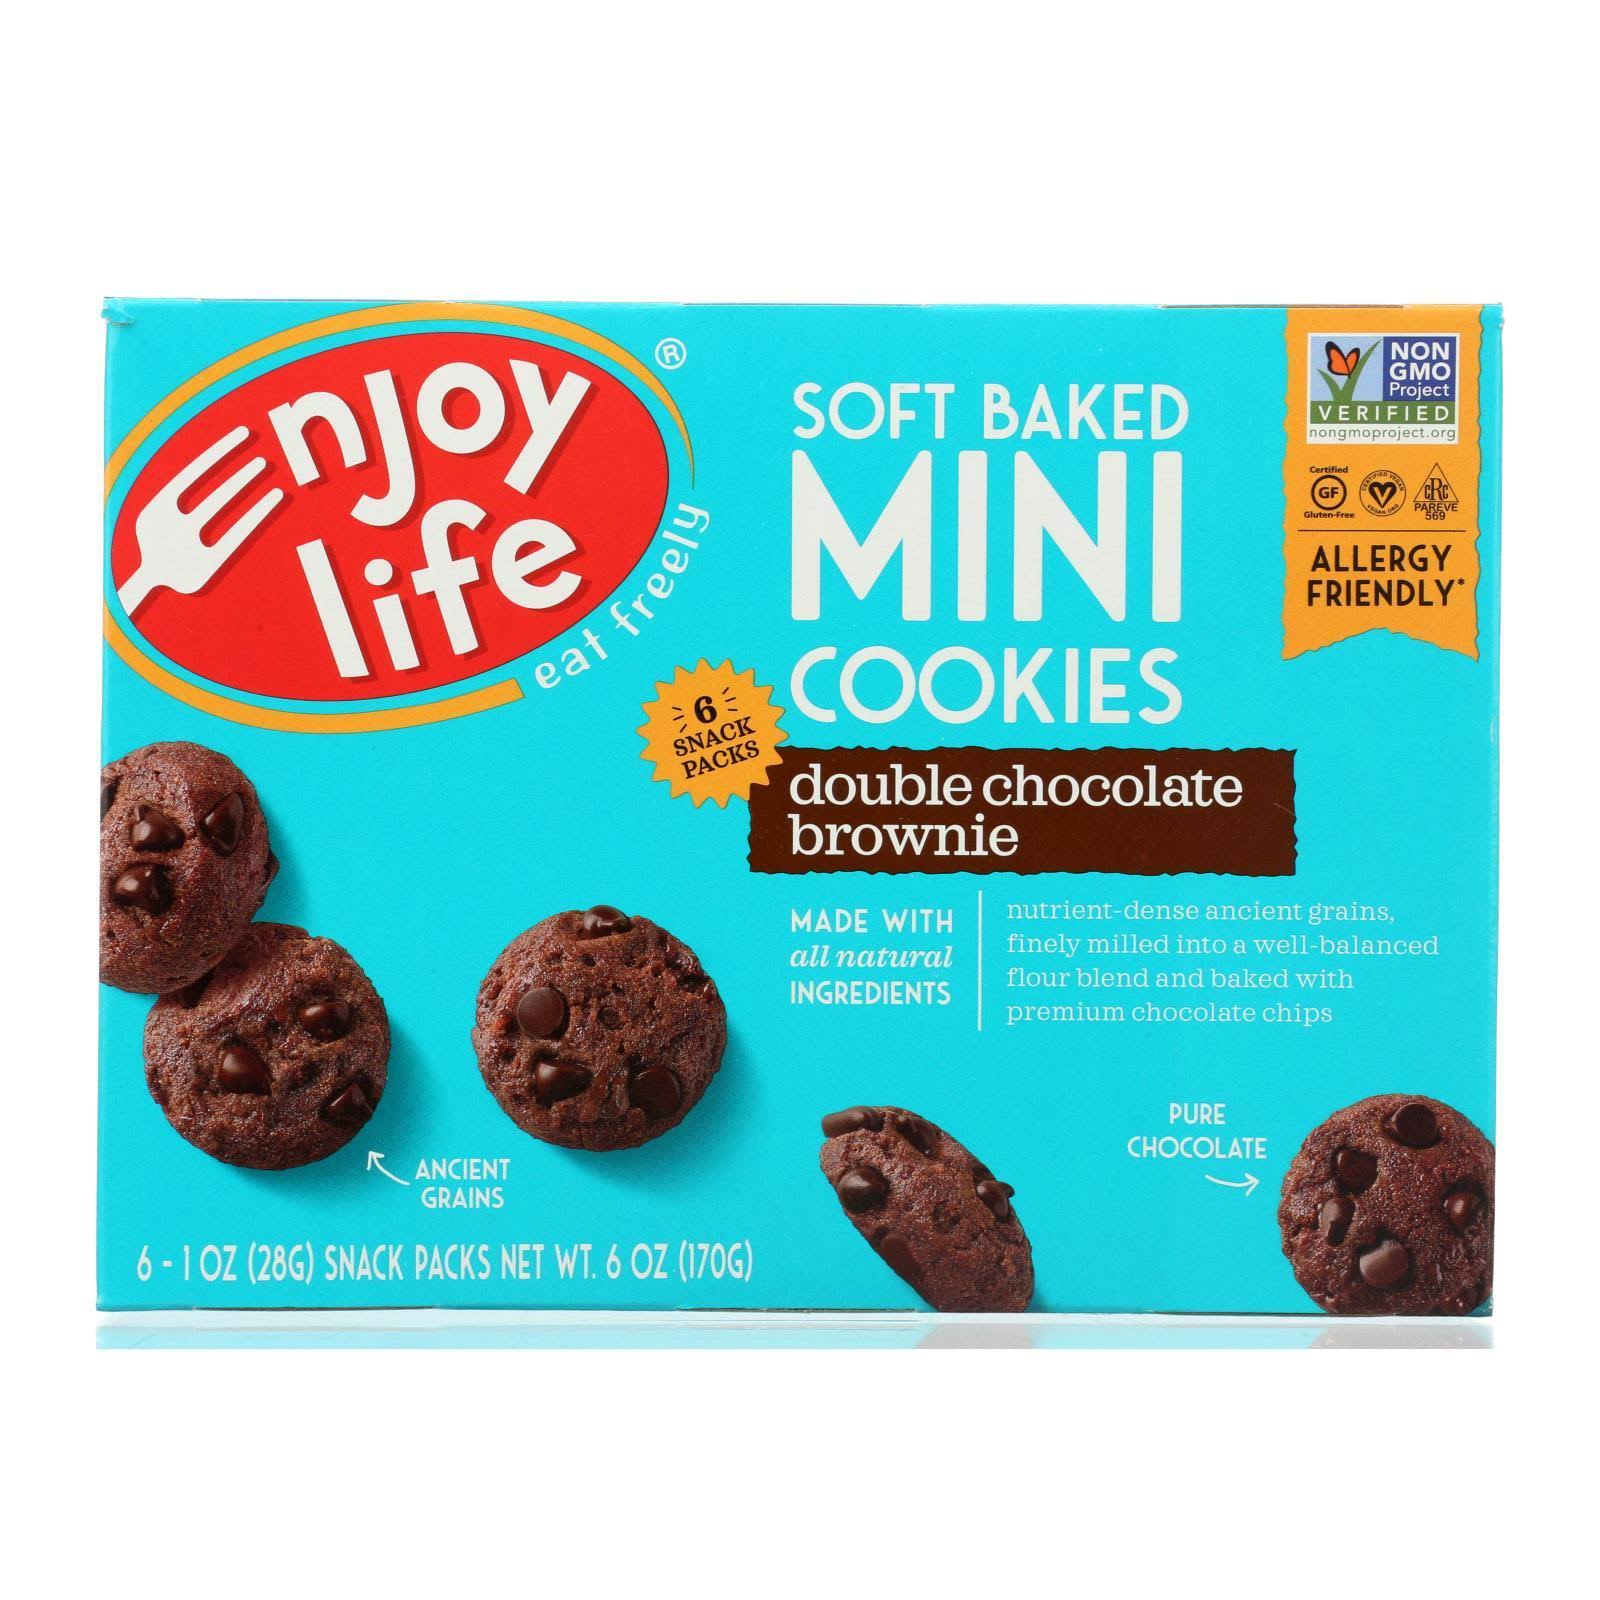 Enjoy Life Foods Soft Baked Mini Cookies Snack - Double Chocolate Brownie, 6pk, 1oz